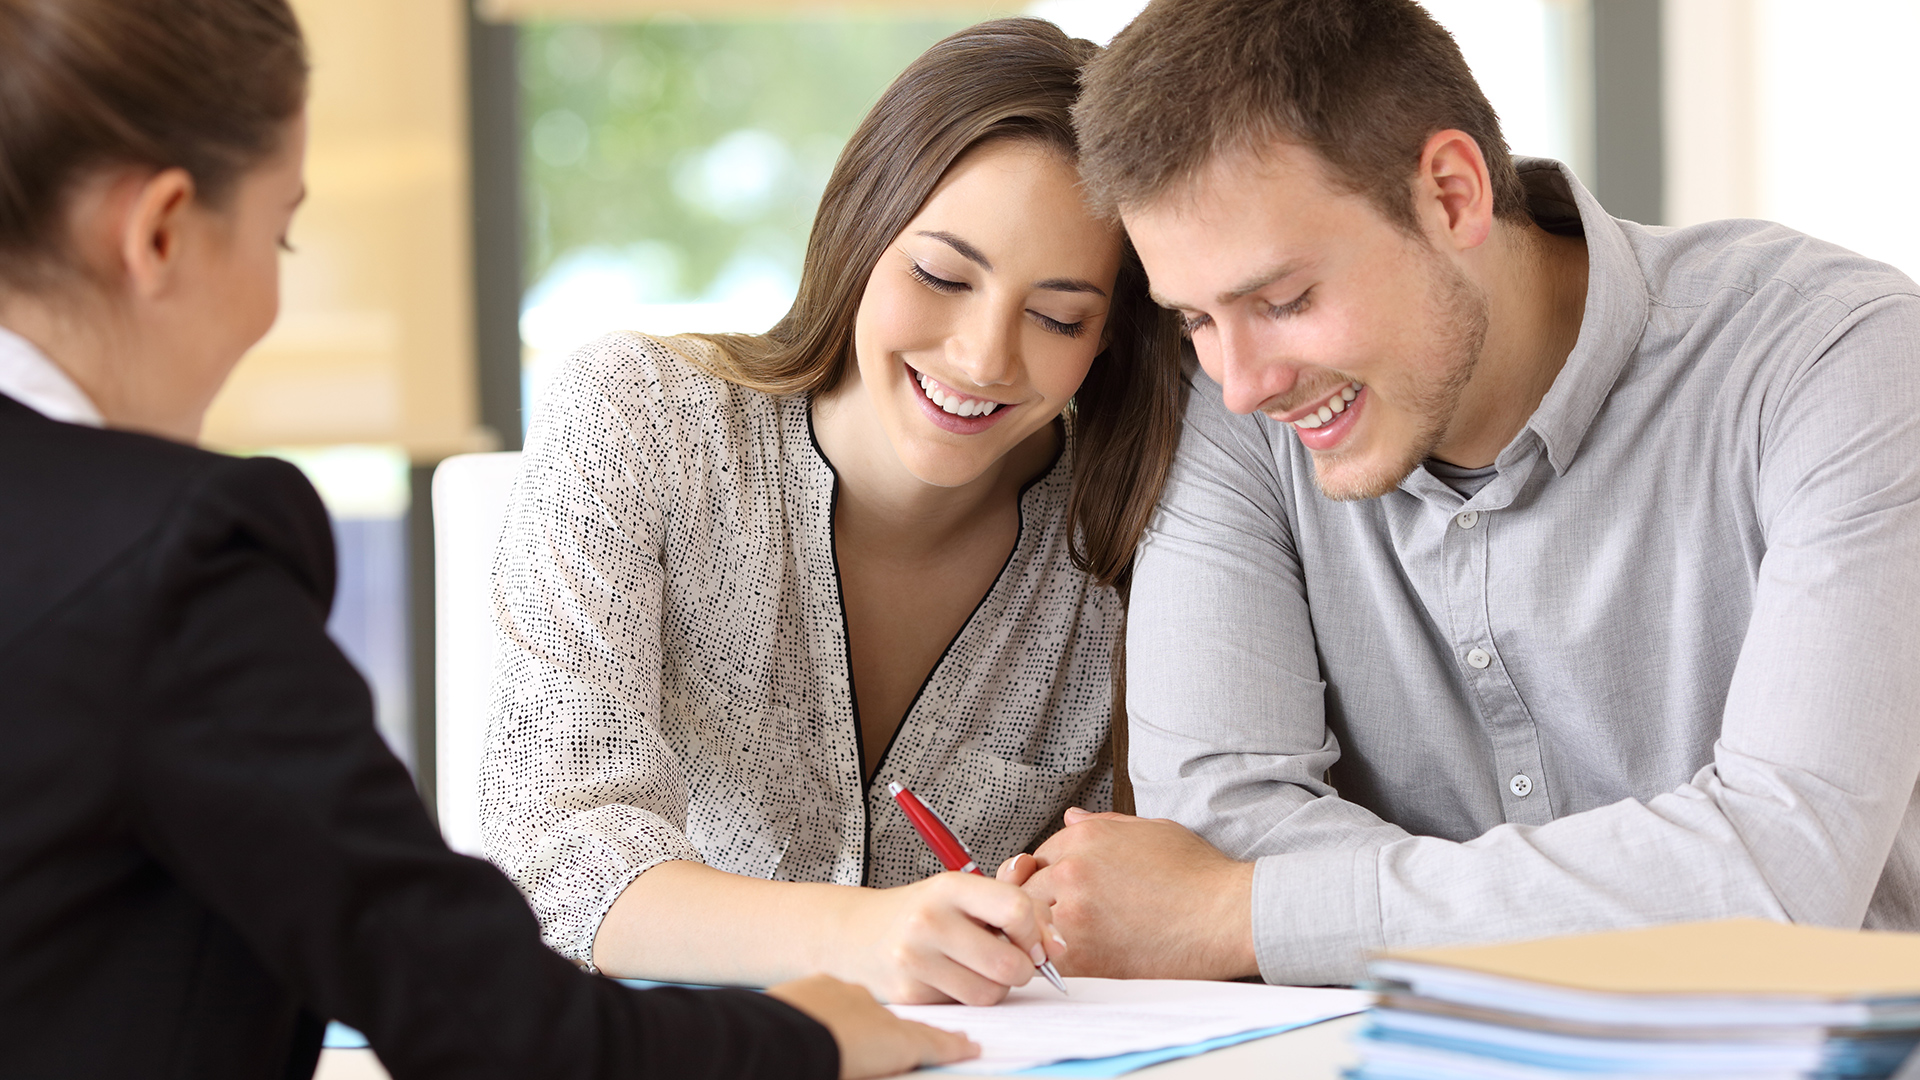 signing papers specialty insurance plans